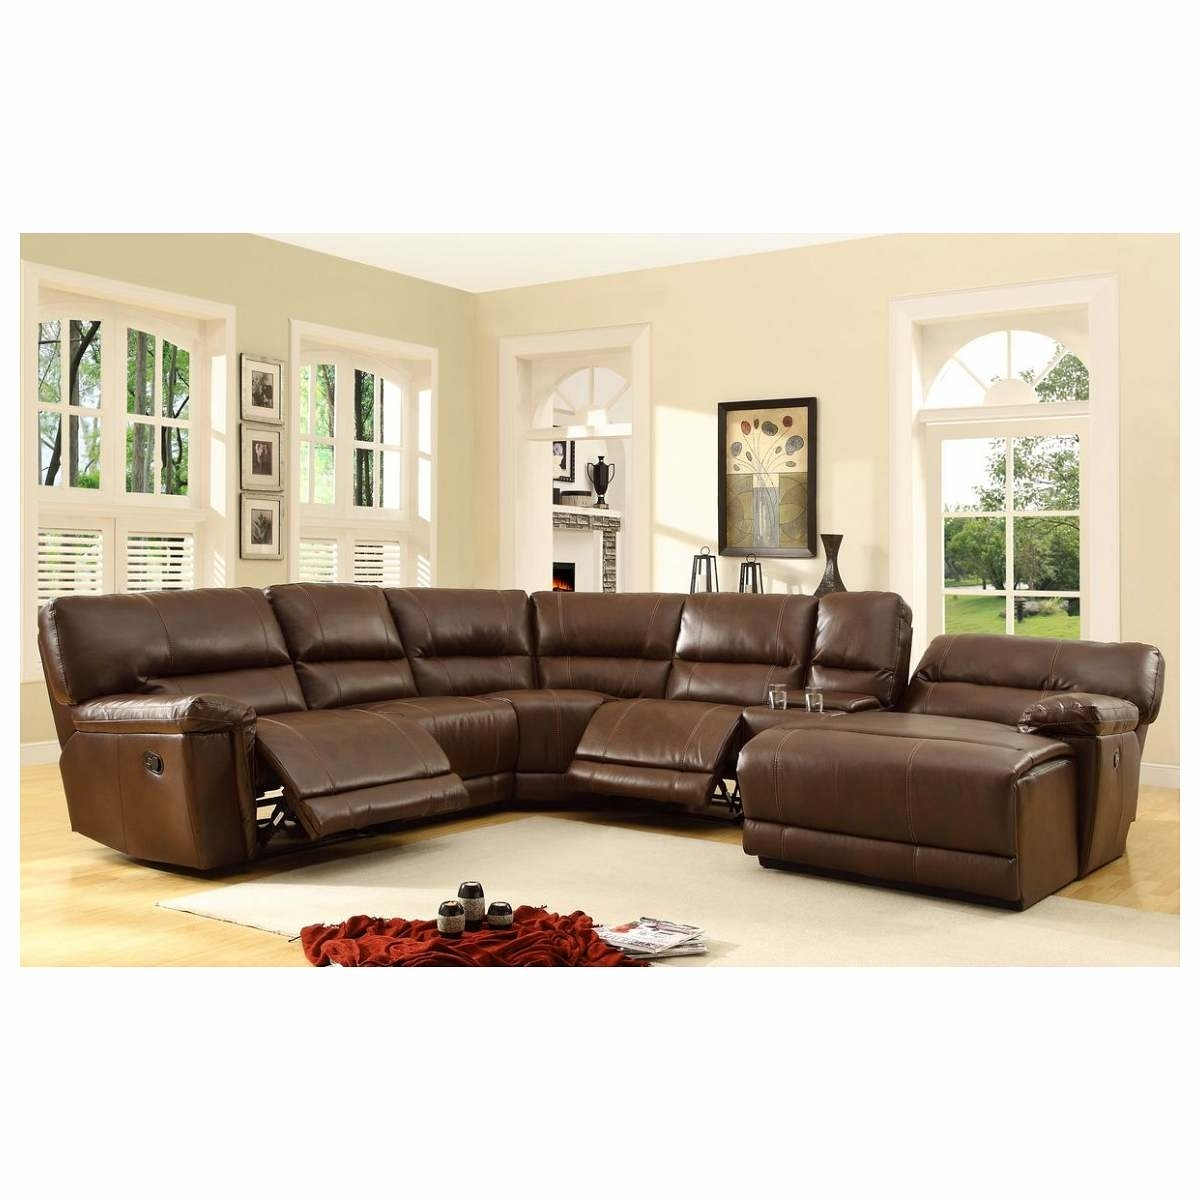 6 Pc Blythe Collection Brown Bonded Leather Match Upholstered Intended For Tampa Fl Sectional Sofas (Photo 8 of 10)